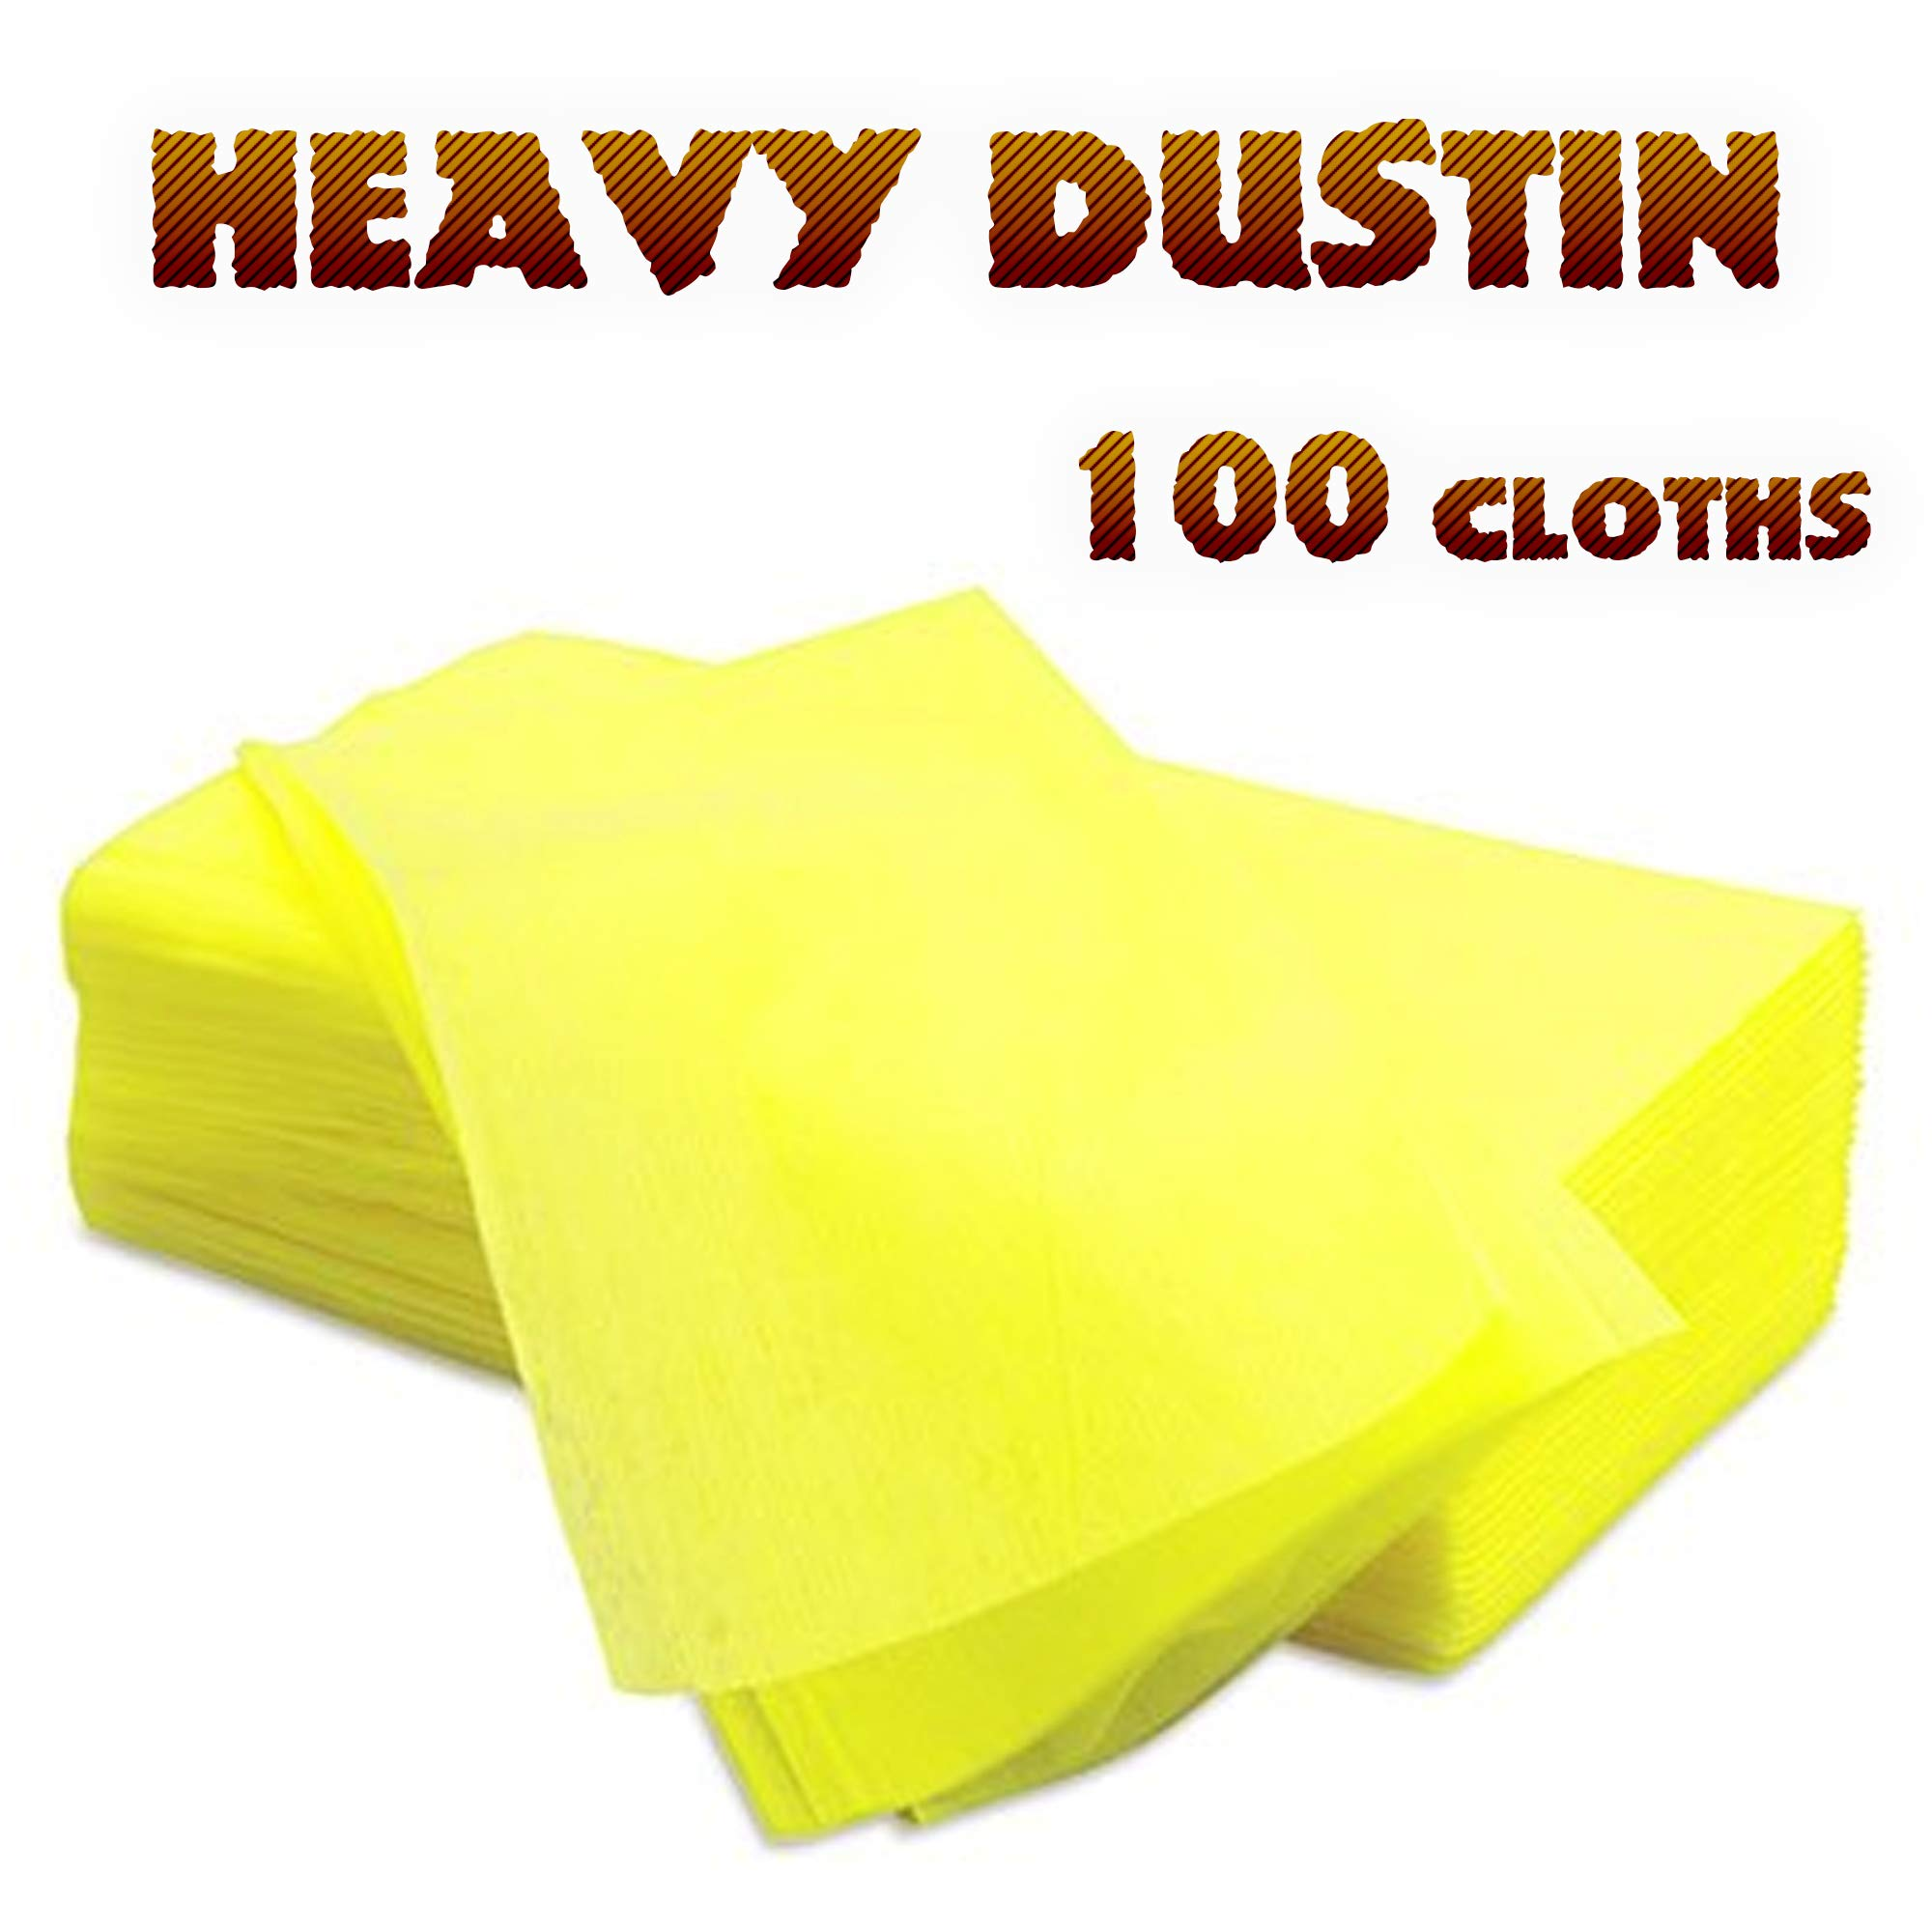 100 Dust Cloths - Disposable Treated Dusting Cloth - 2 Packs of 50 Cleaning Wipes